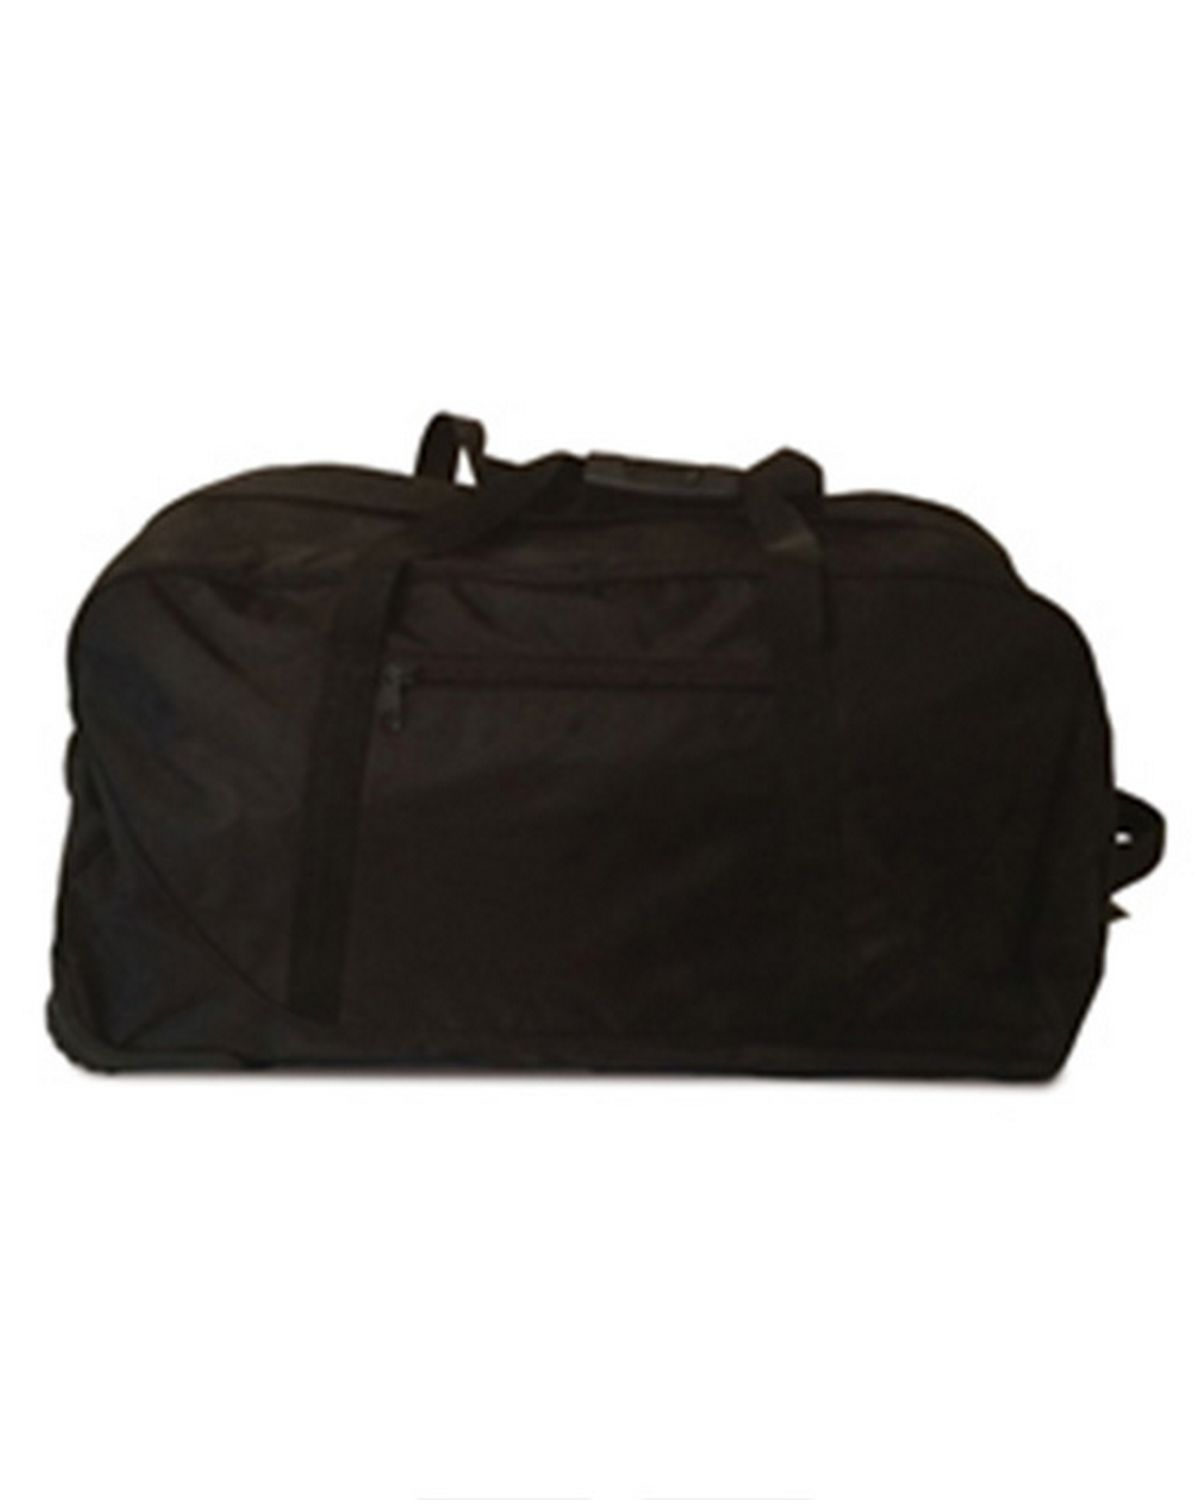 4b340a3ab8d1b1 Duffle Bag With Wheels Large | Building Materials Bargain Center